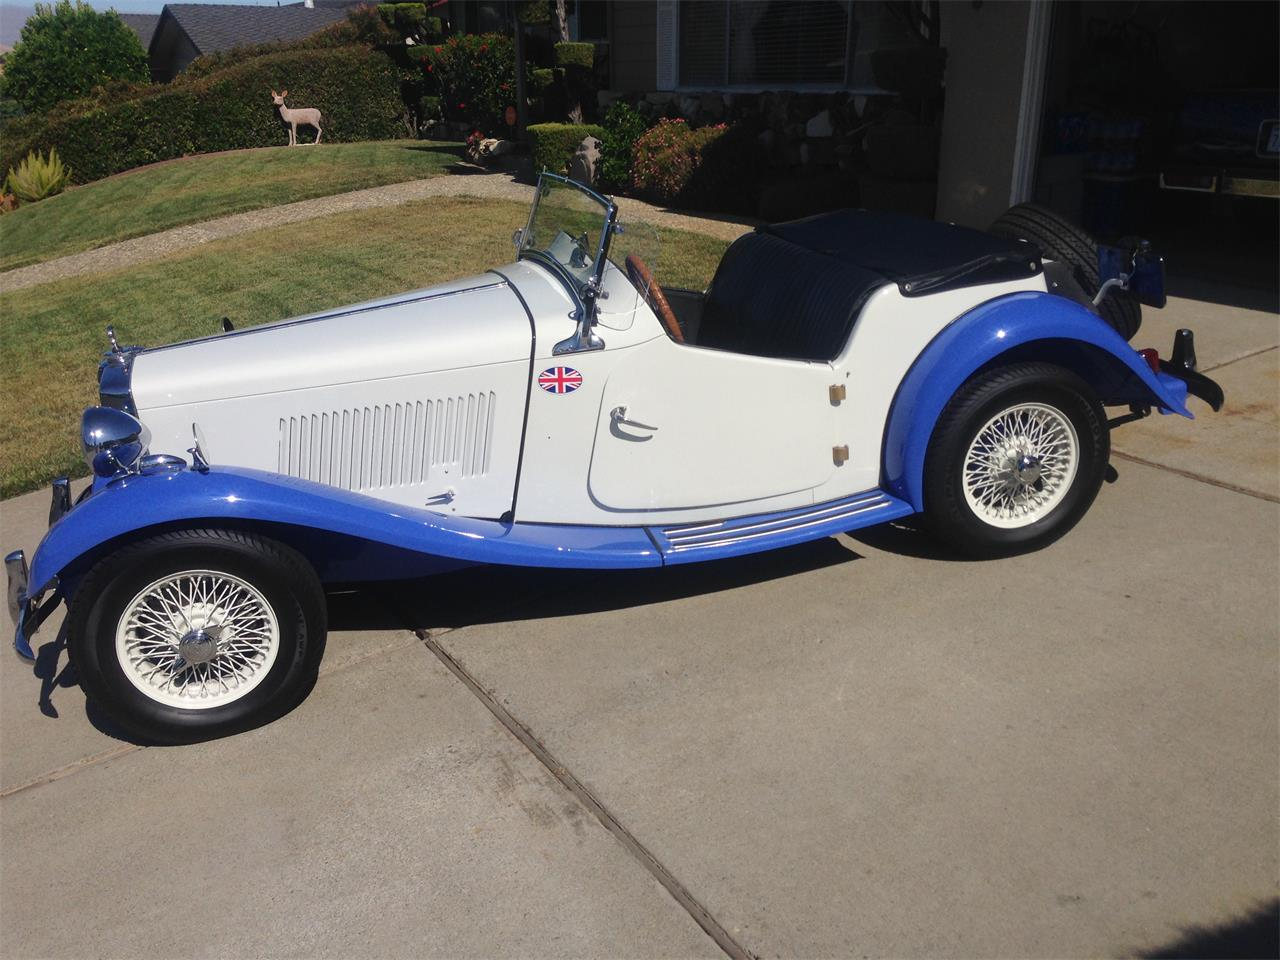 Large Picture of Classic 1952 MG TD located in Antioch California - $18,888.00 Offered by a Private Seller - FTY3